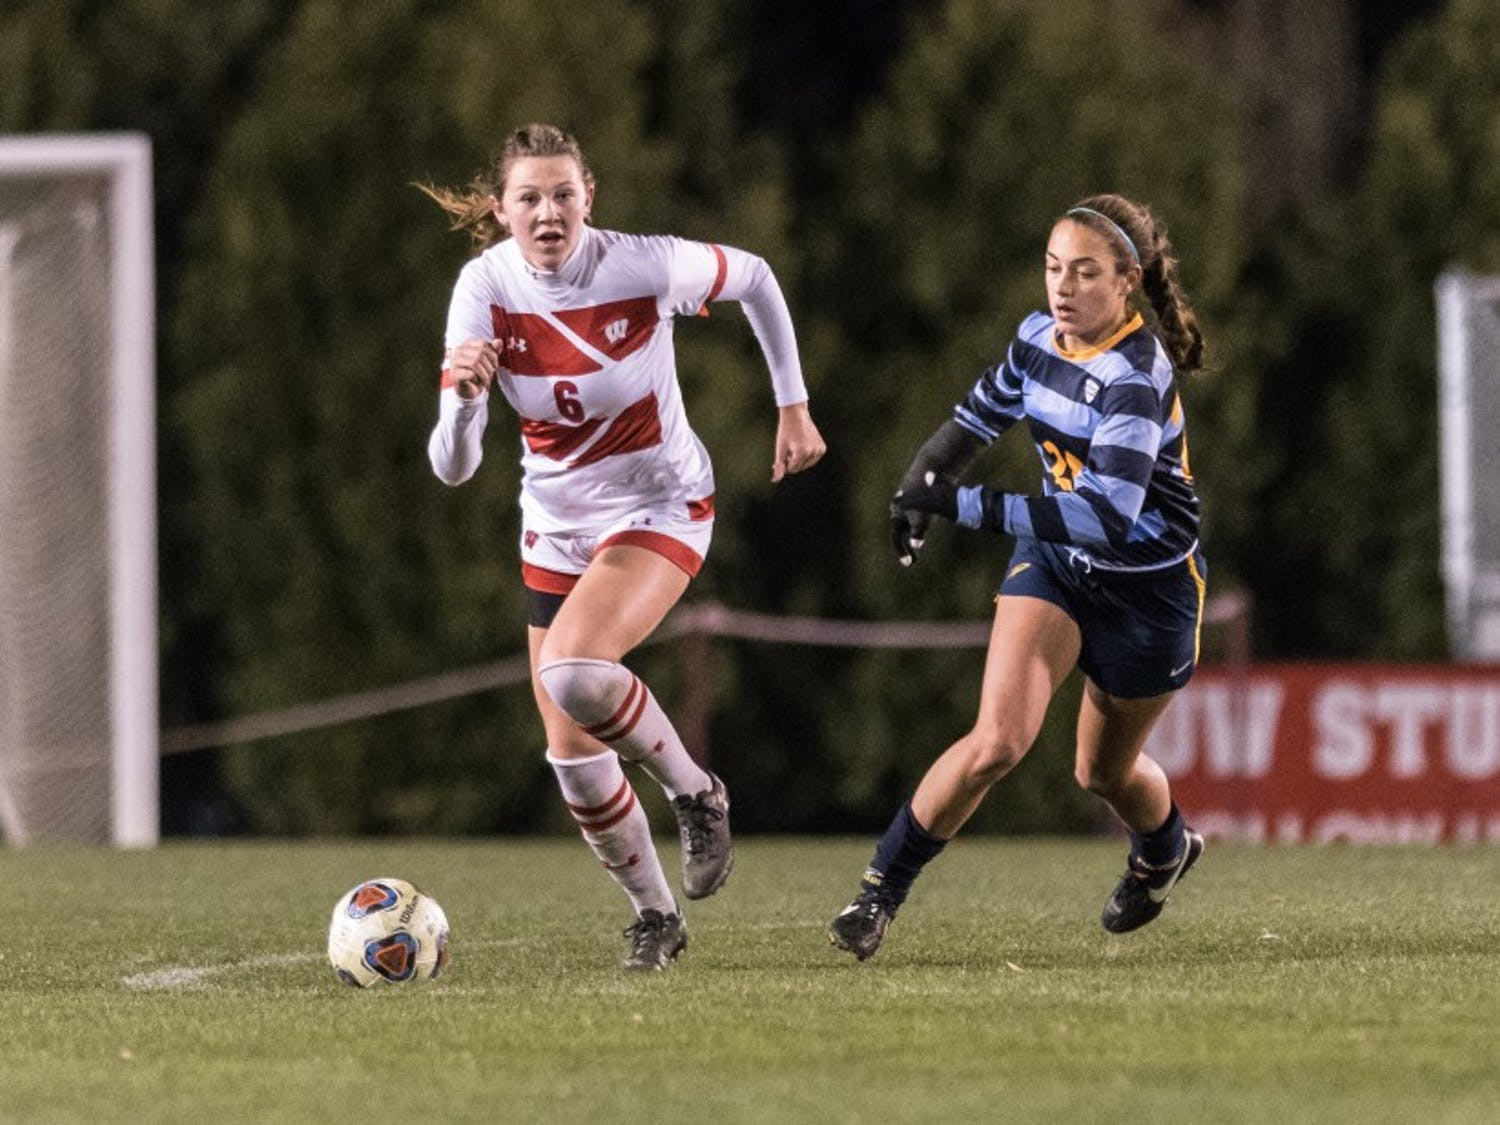 Sophomore defender Grace Douglas scored her first two goals of the season as UW dominated Toledo Friday night.